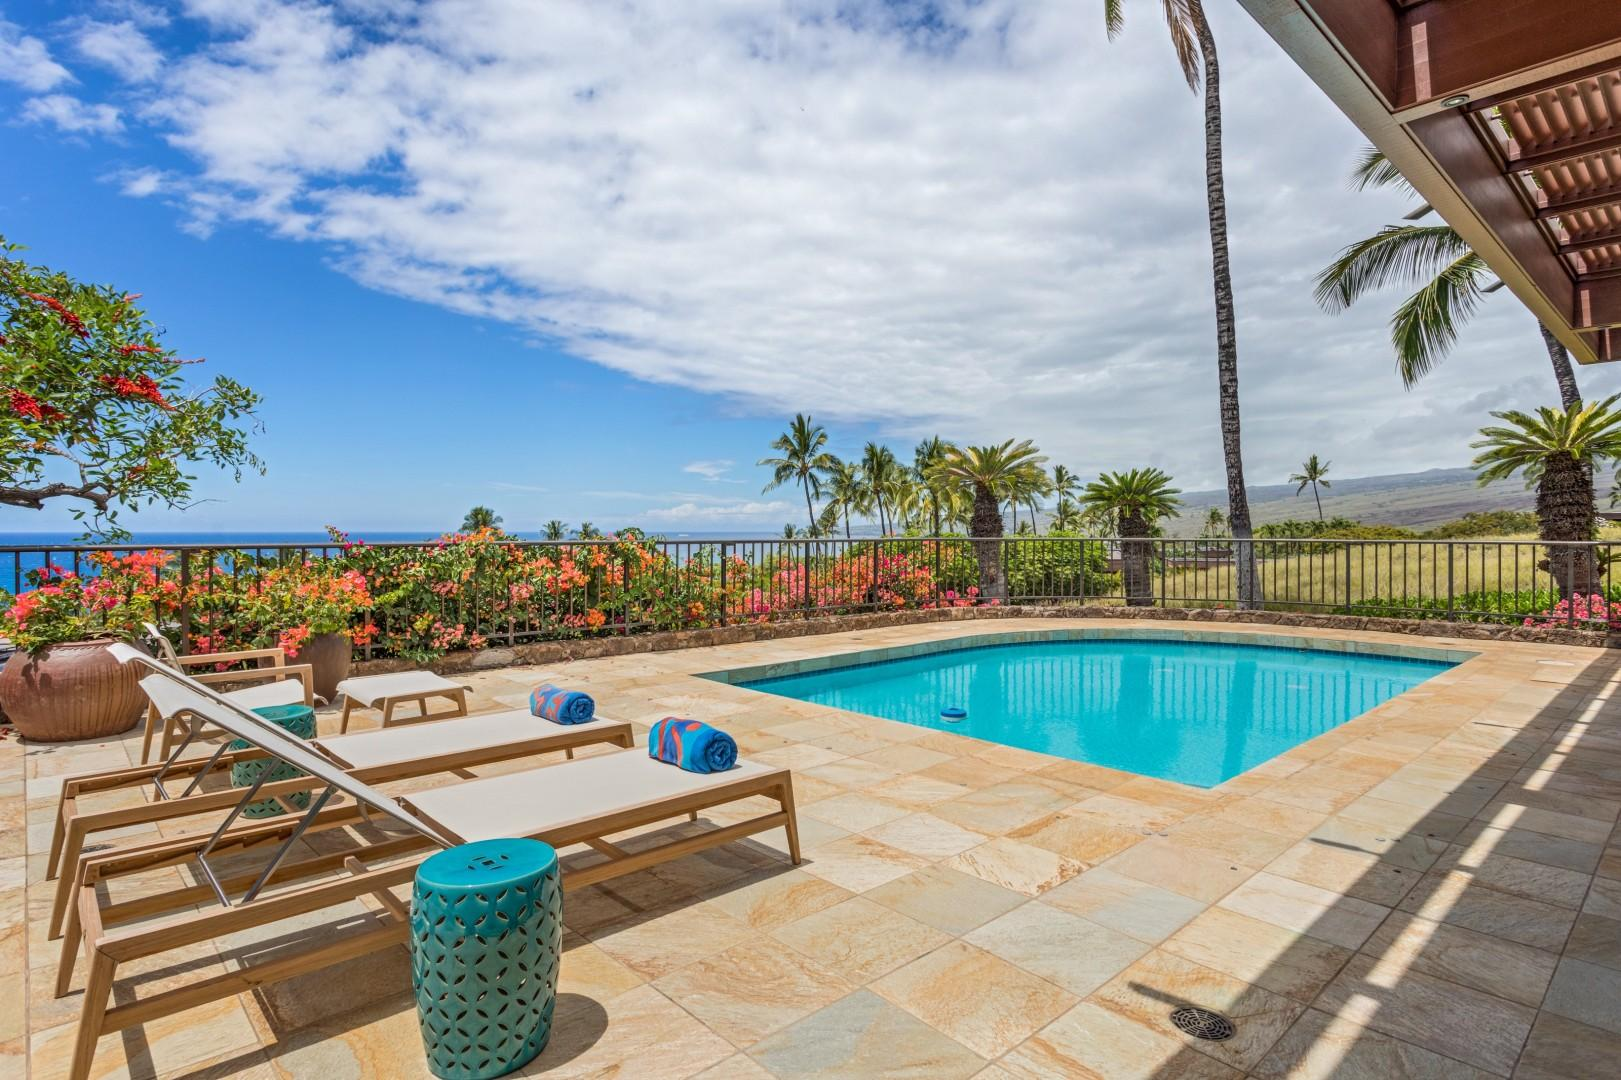 Enjoy Whale Watching (December-April) & Epic Views Year Round from the Generous Lanai & Pool Deck.